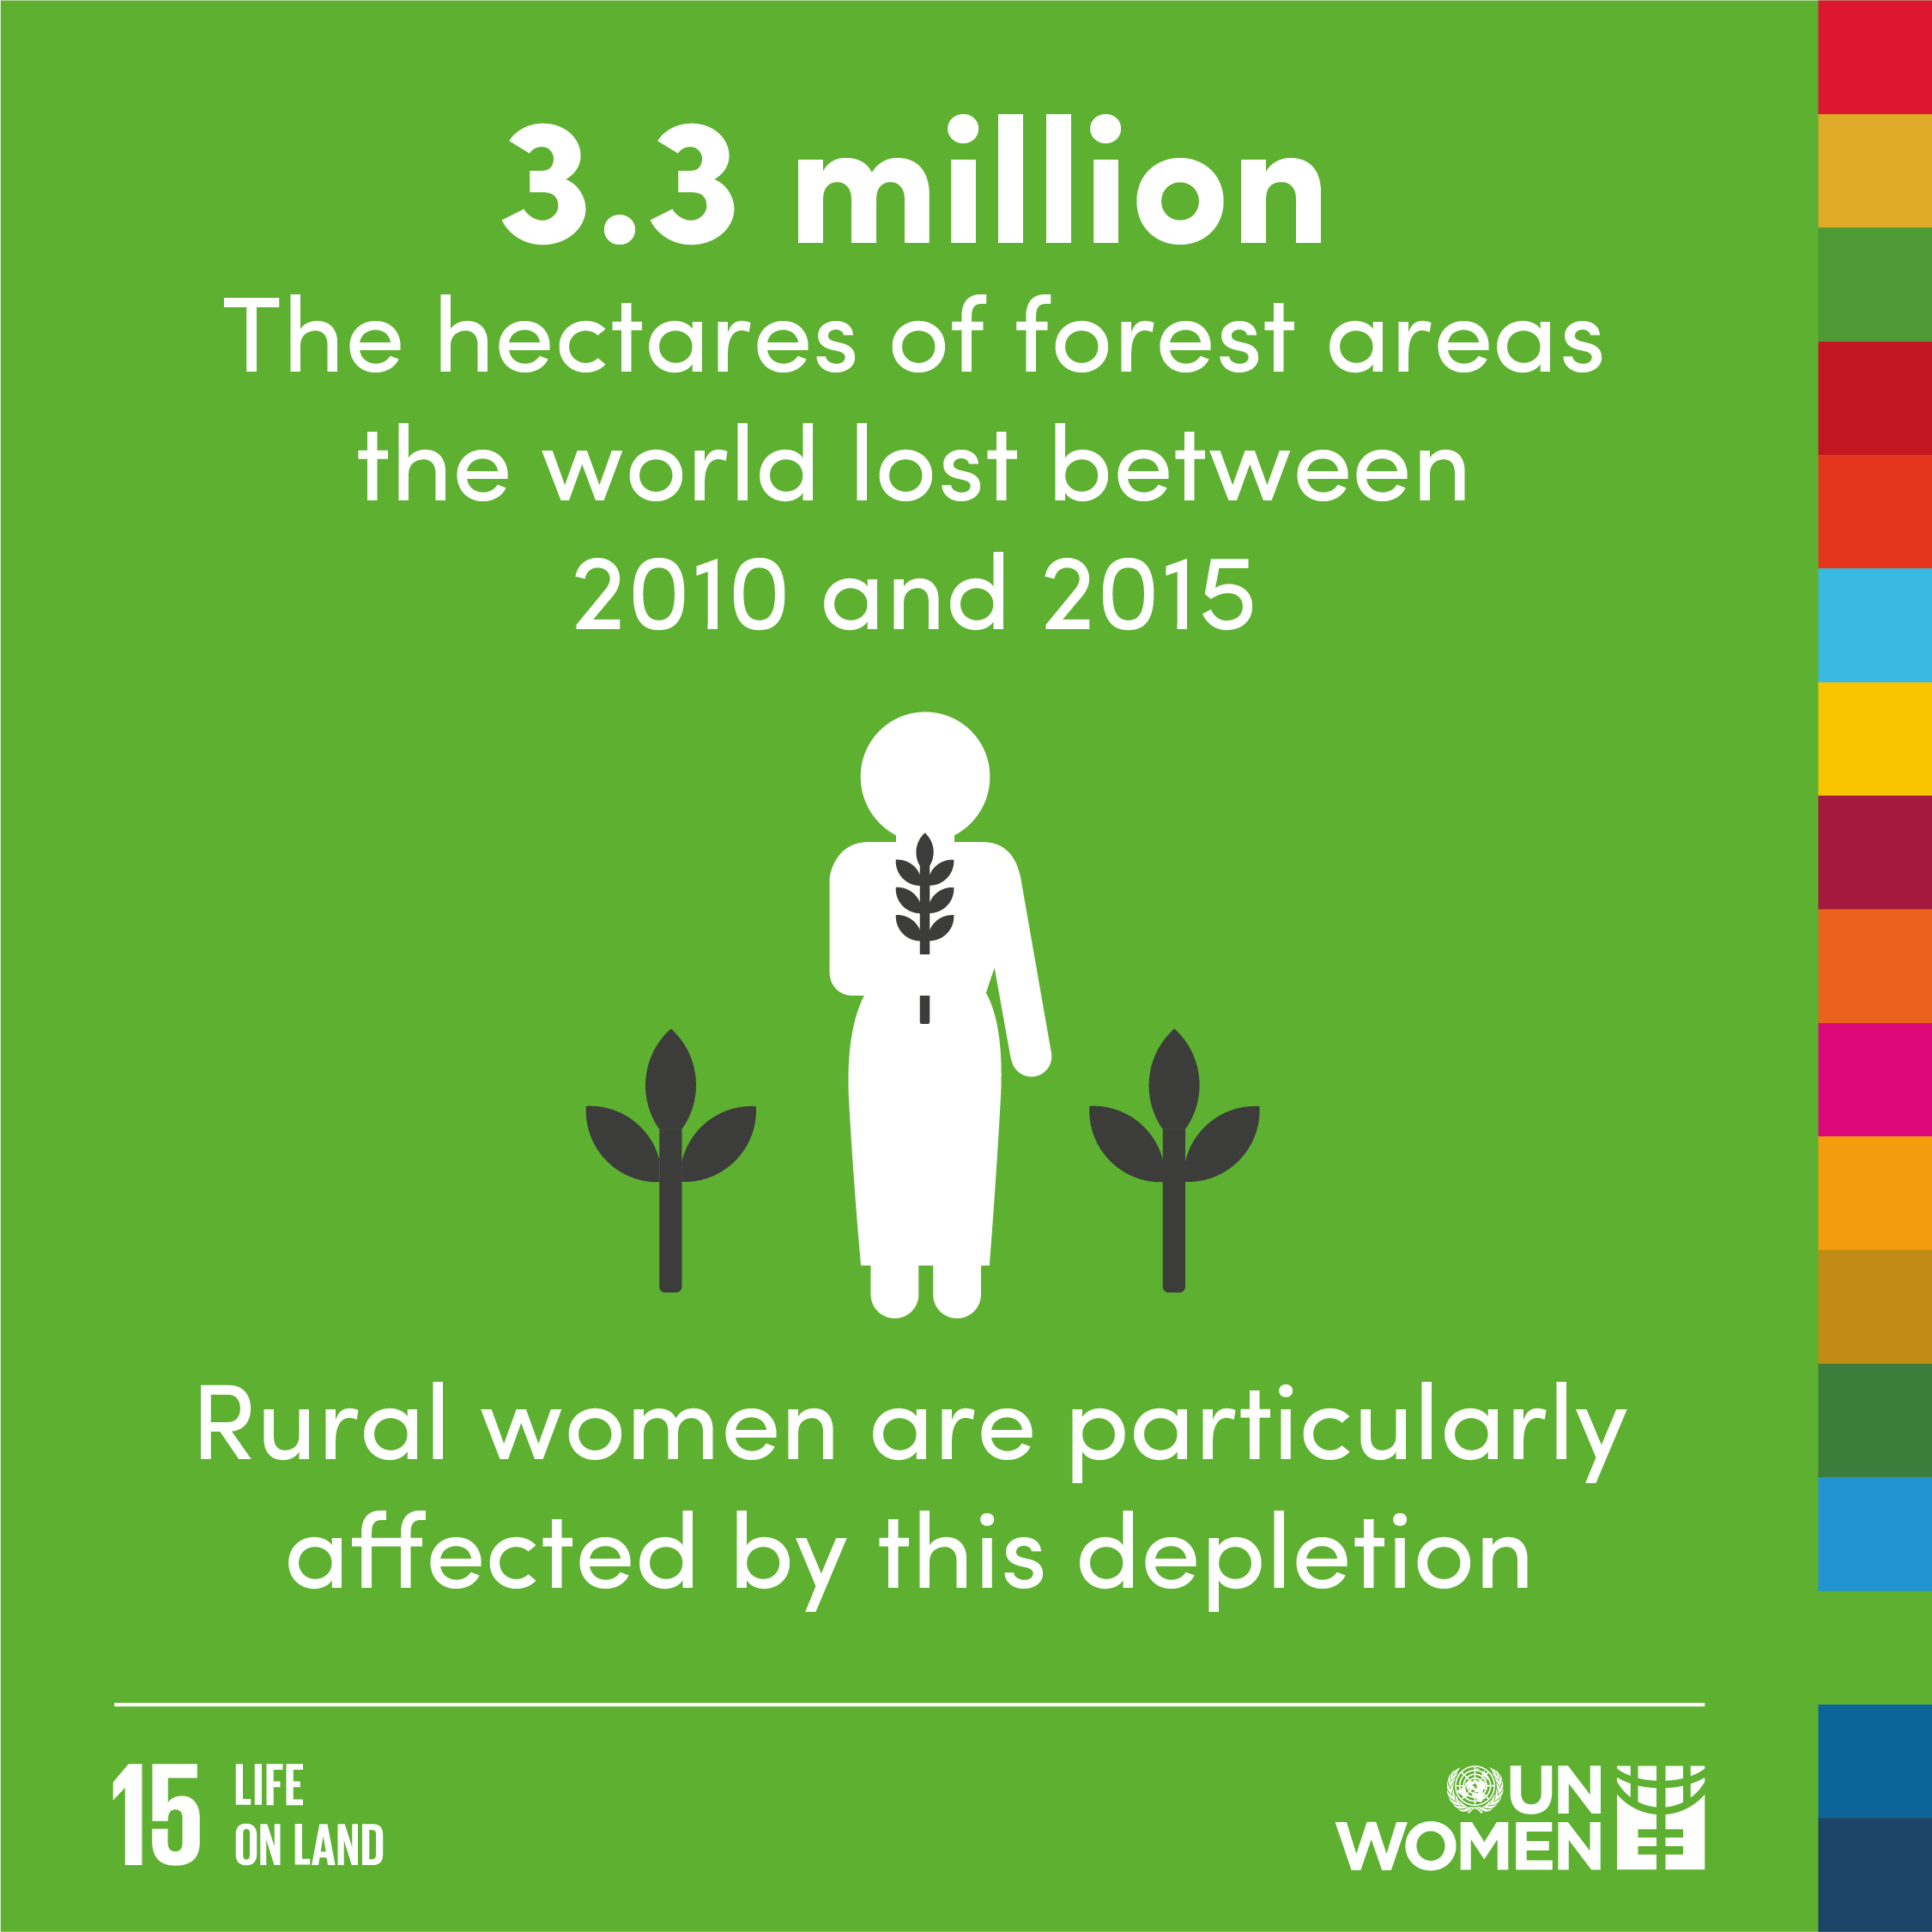 3.3 million. the hectares of forest areas the world lost between 2000 and 2015. rural women are particularly affected by this depletion.